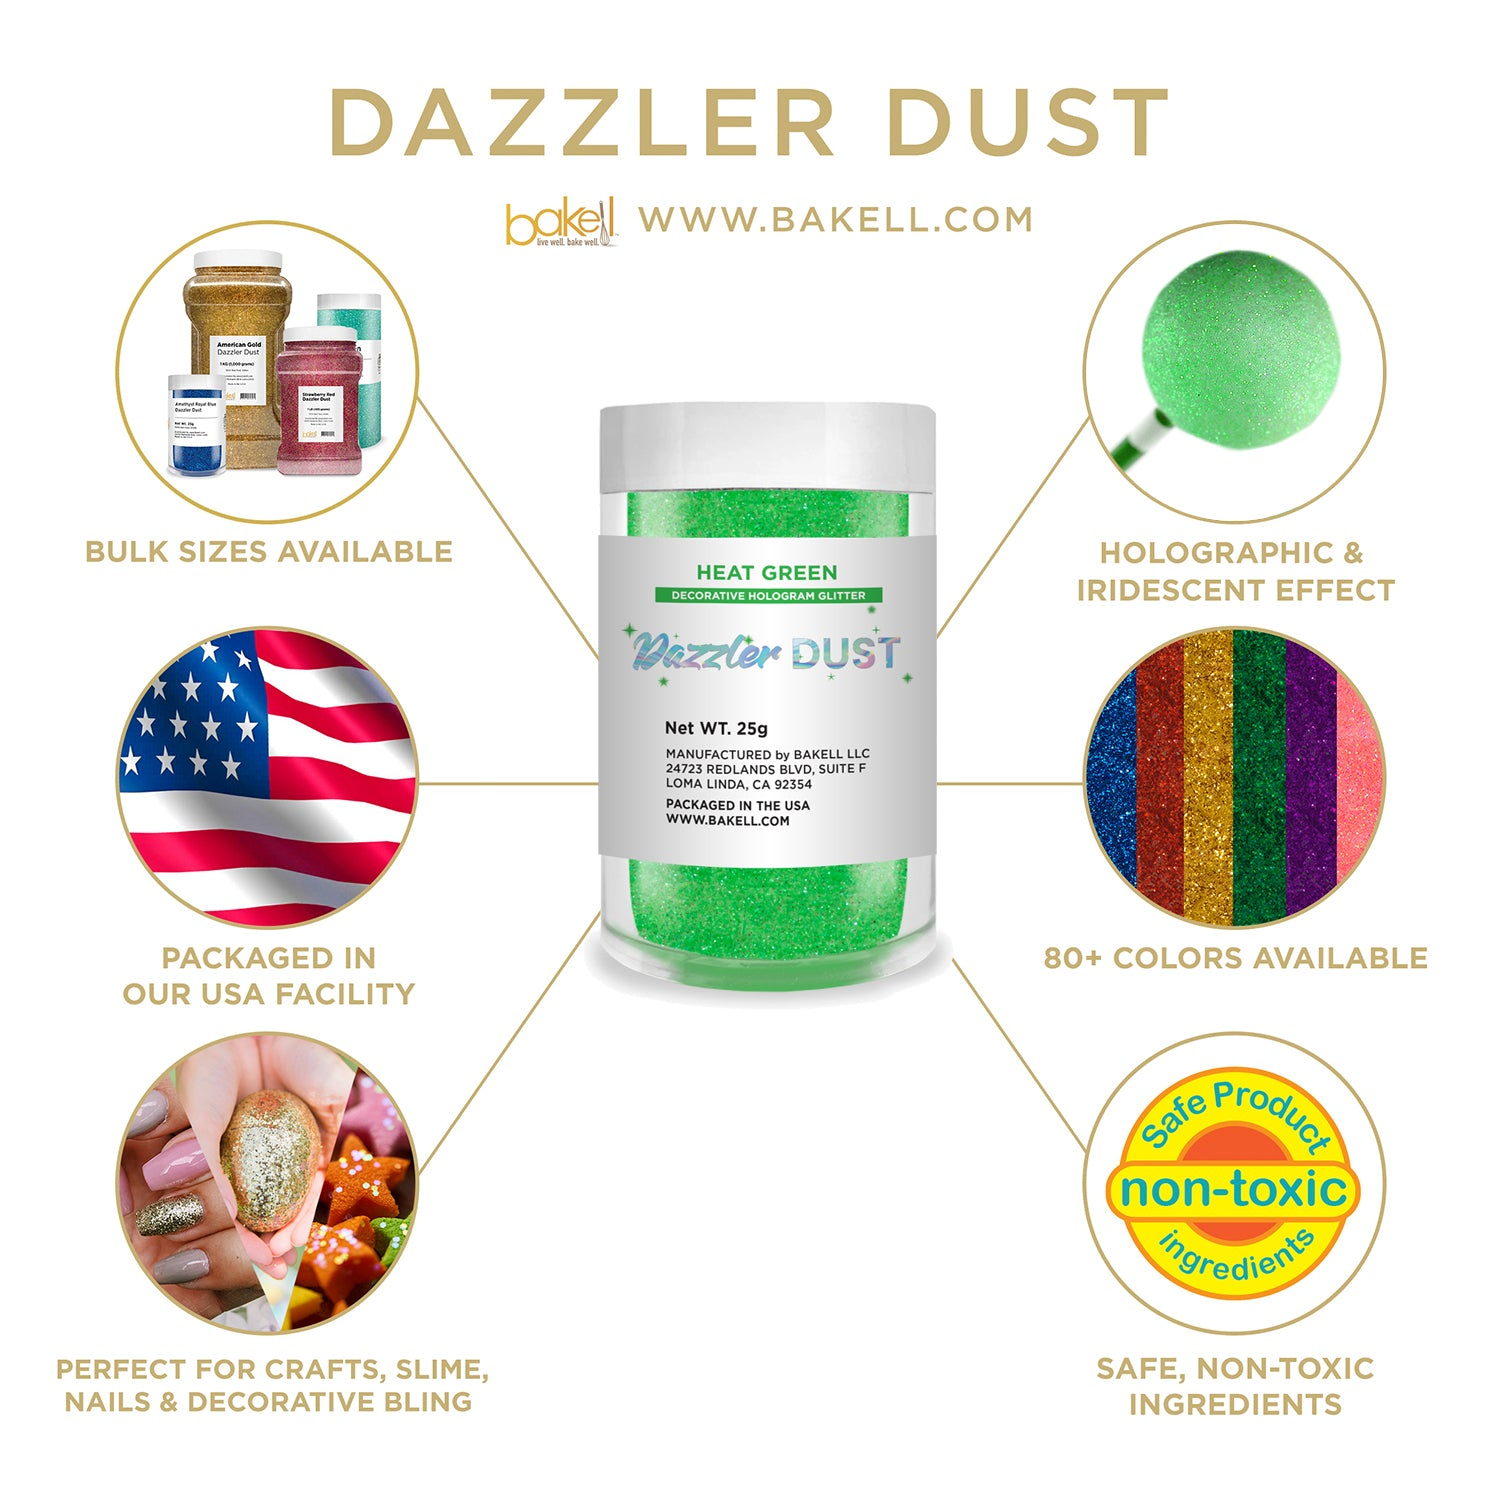 Dazzler Dust | Non Toxic Holographic Decorating & Craft Glitter | Bakell.com